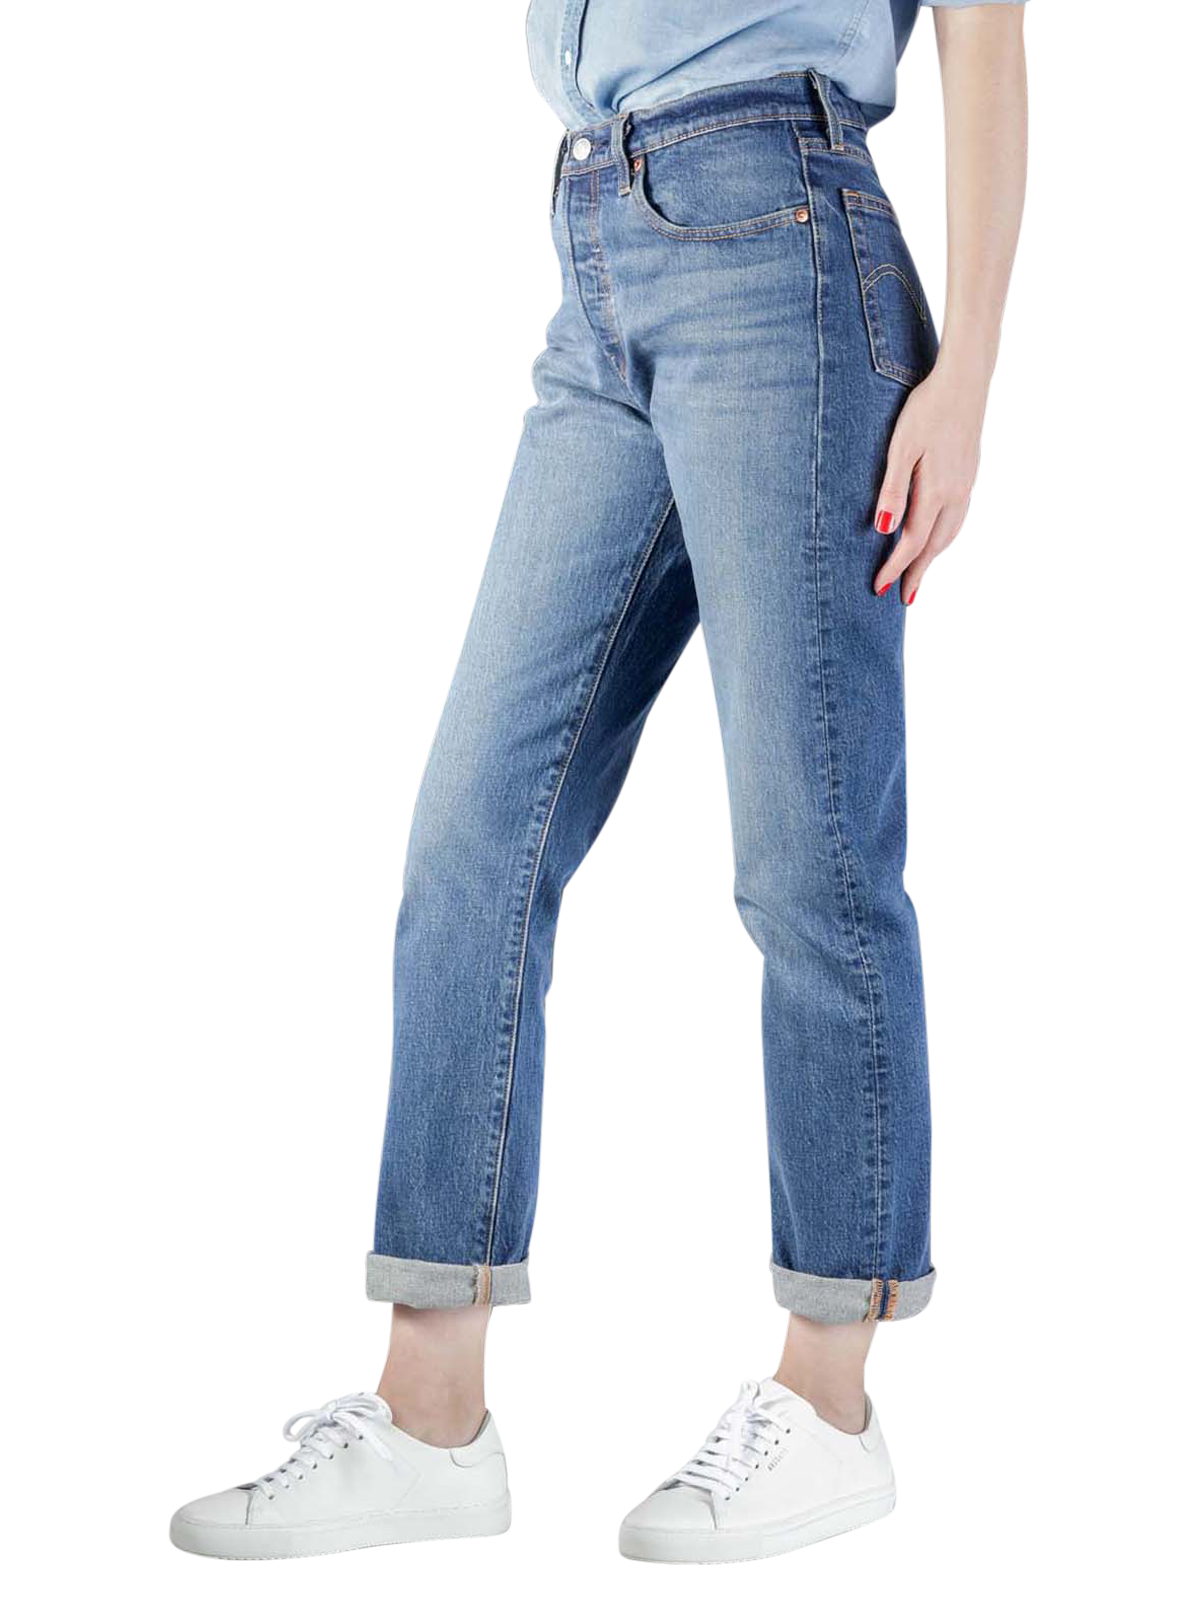 Levi's 501 Original Jeans Cropped charleston all day ... - Levi Strauss 501 Jeans